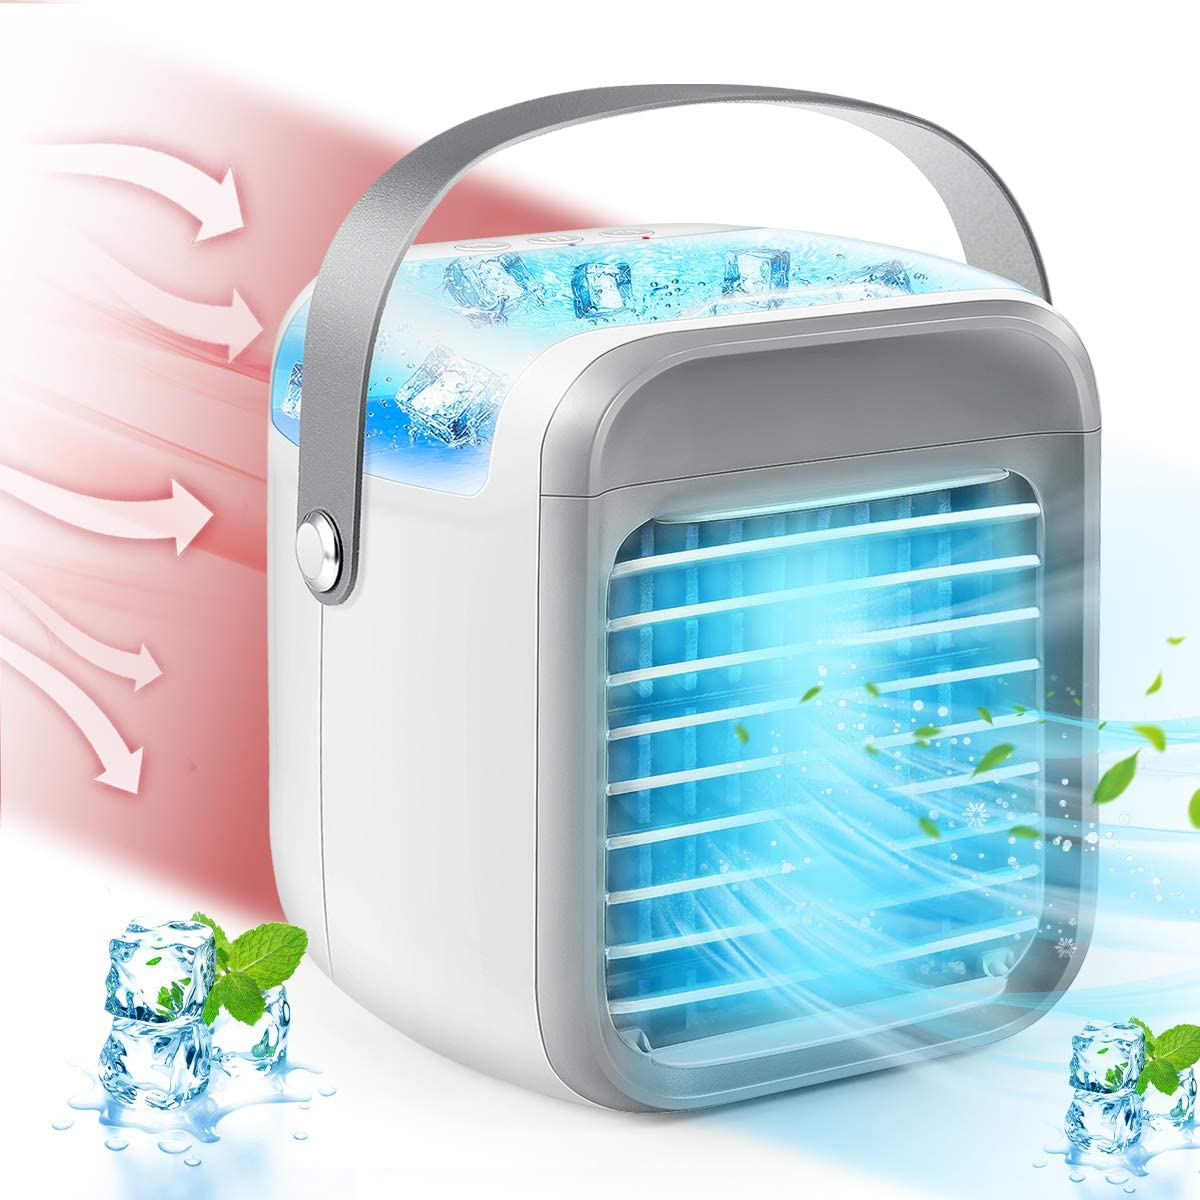 YGGAamble Air Conditioner Fan, Rechargeable Personal Air Cooler with 3 Speeds 7 Colors, Mini Evaporative Air Cooler with LED Light, Portable Air Conditioners for Room/Bedroom/Office/Dorm/Camping